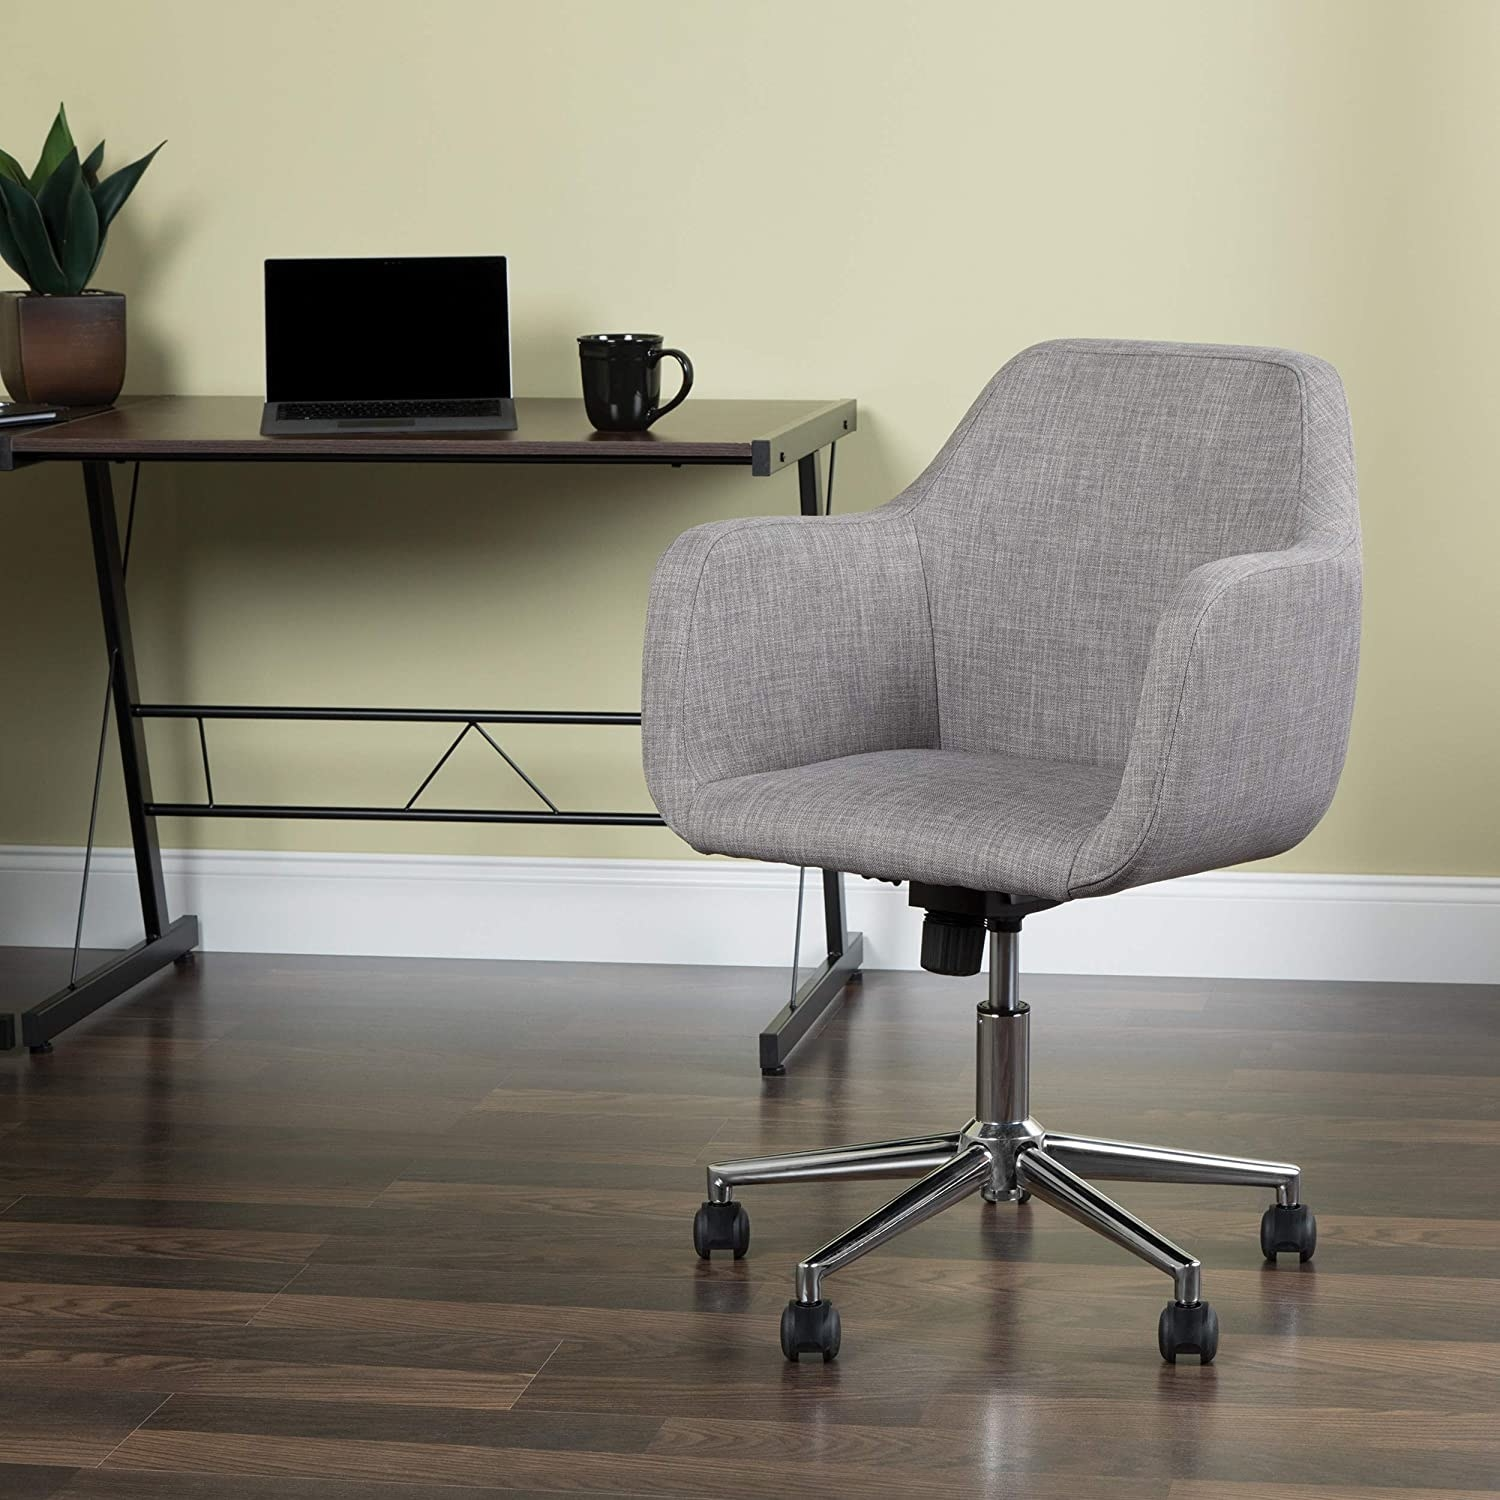 The swivel chair in gray